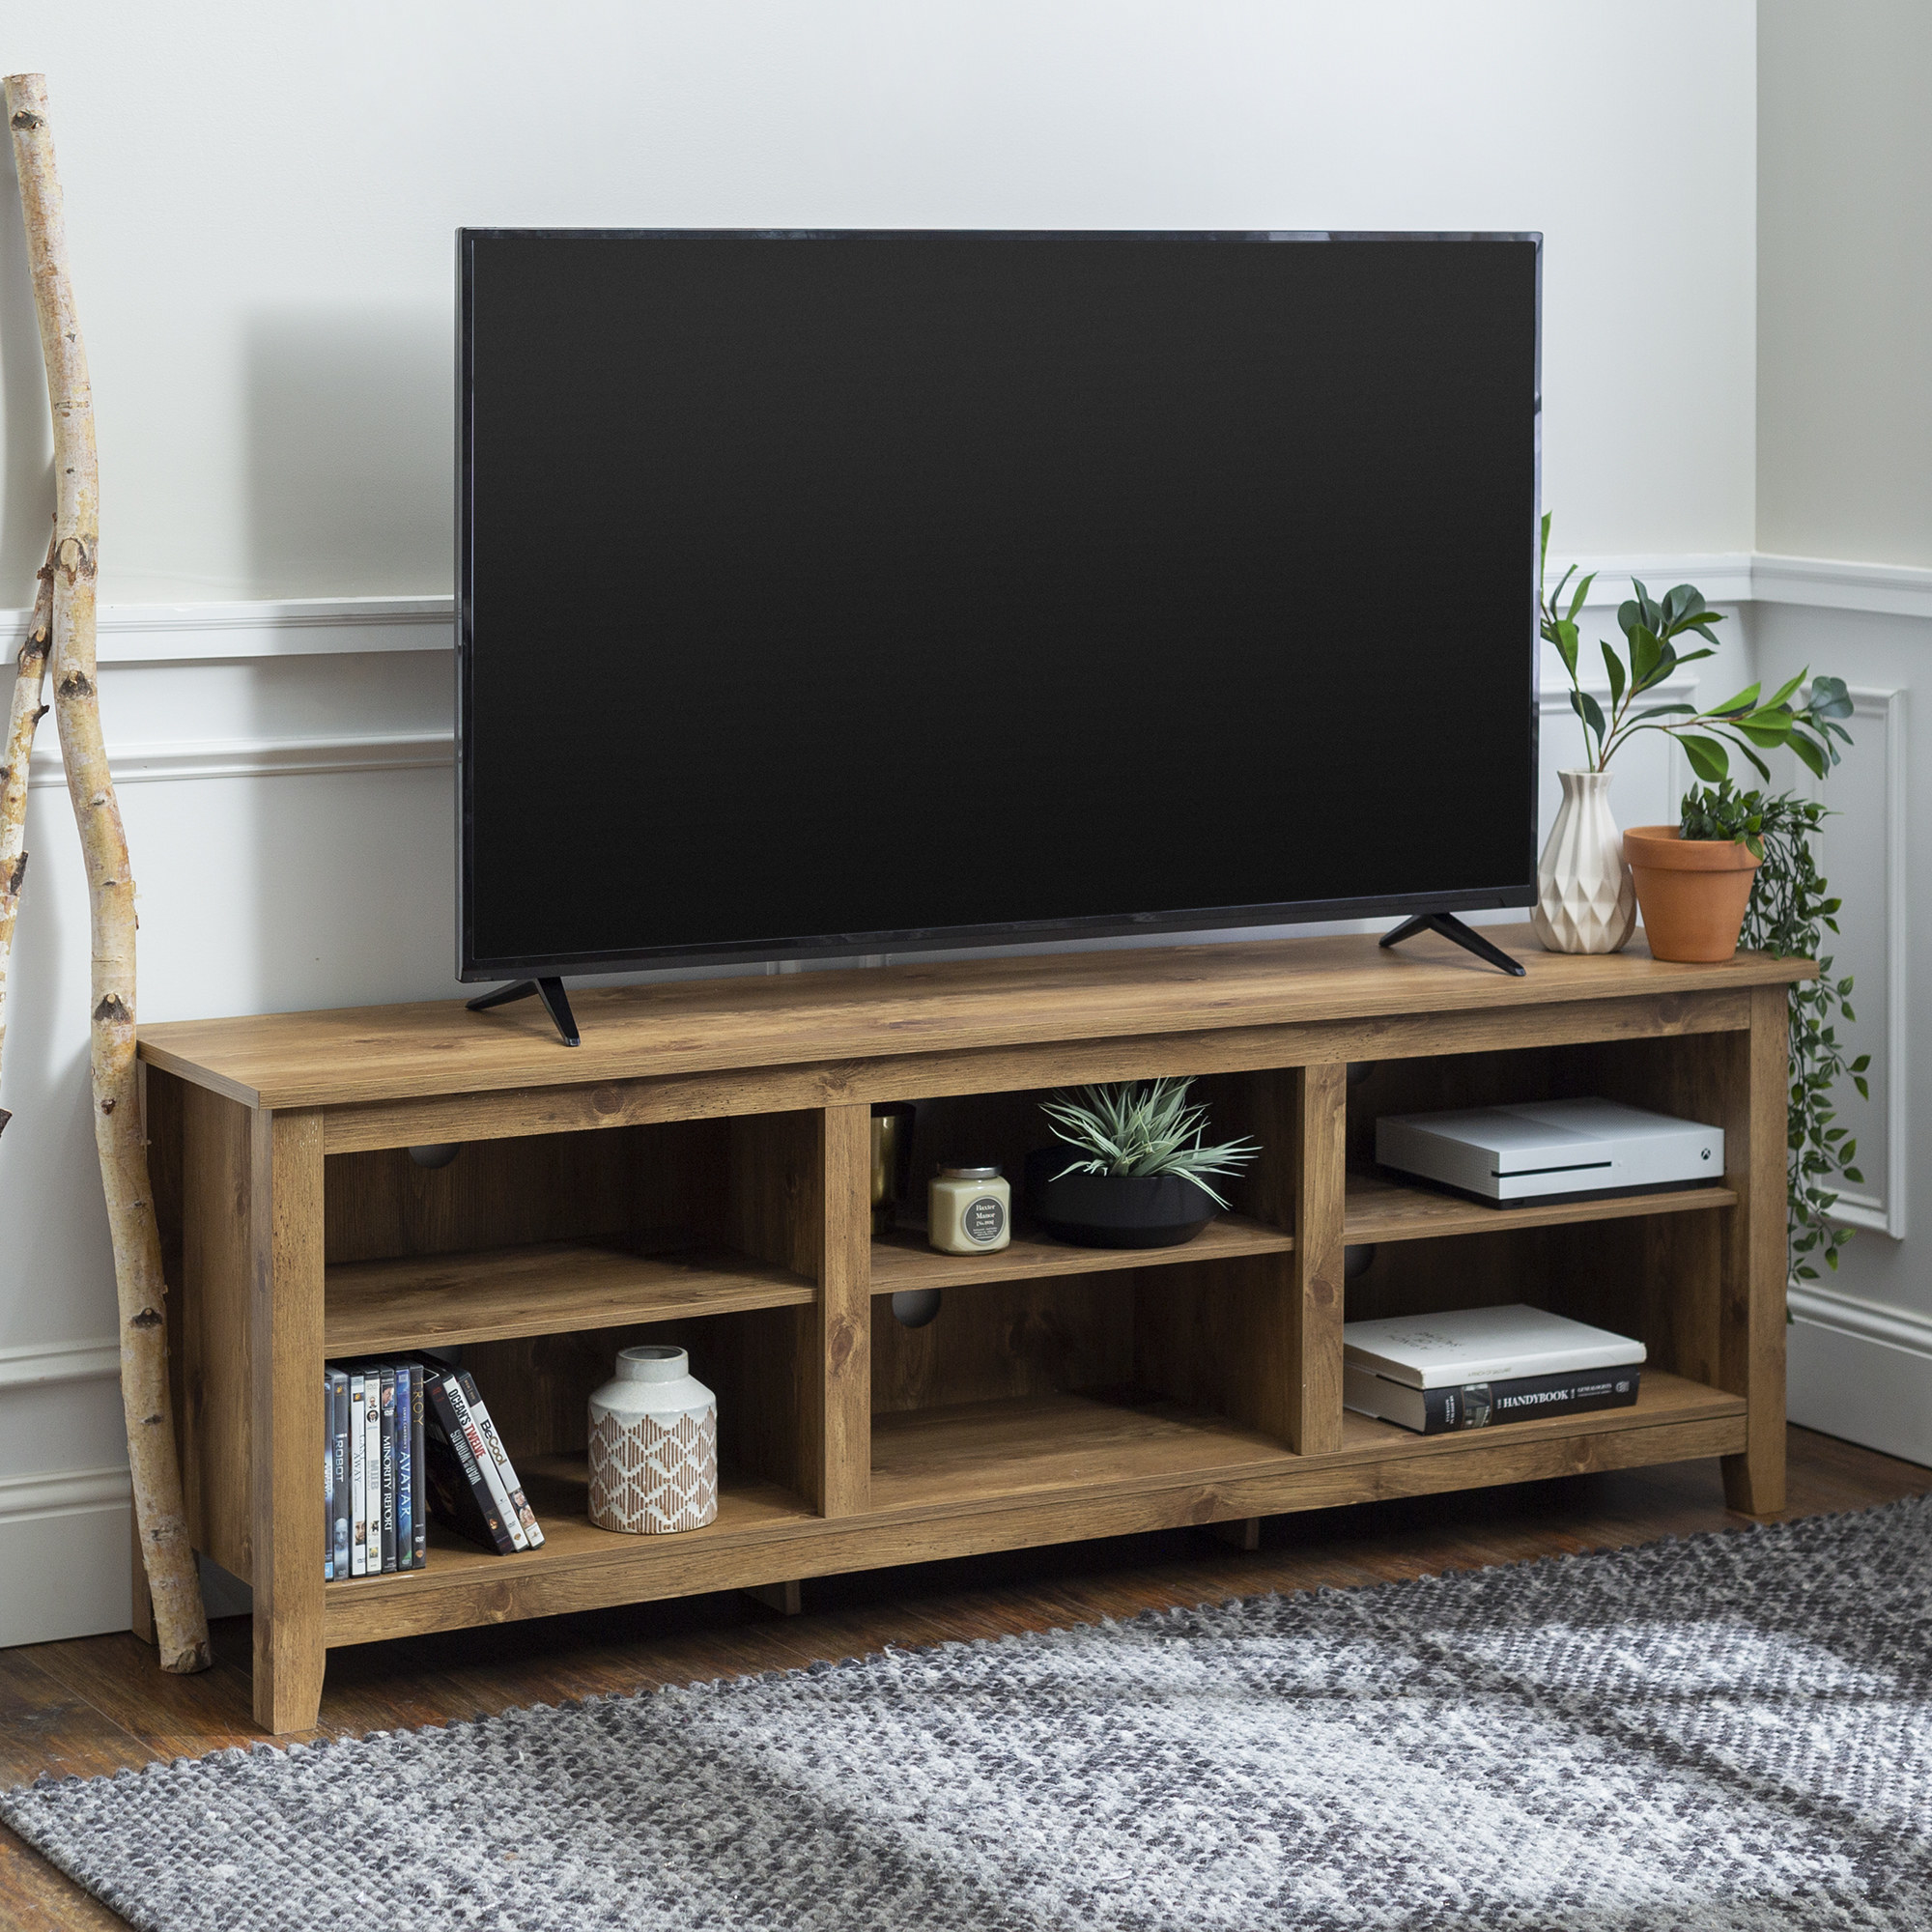 The tan TV stand